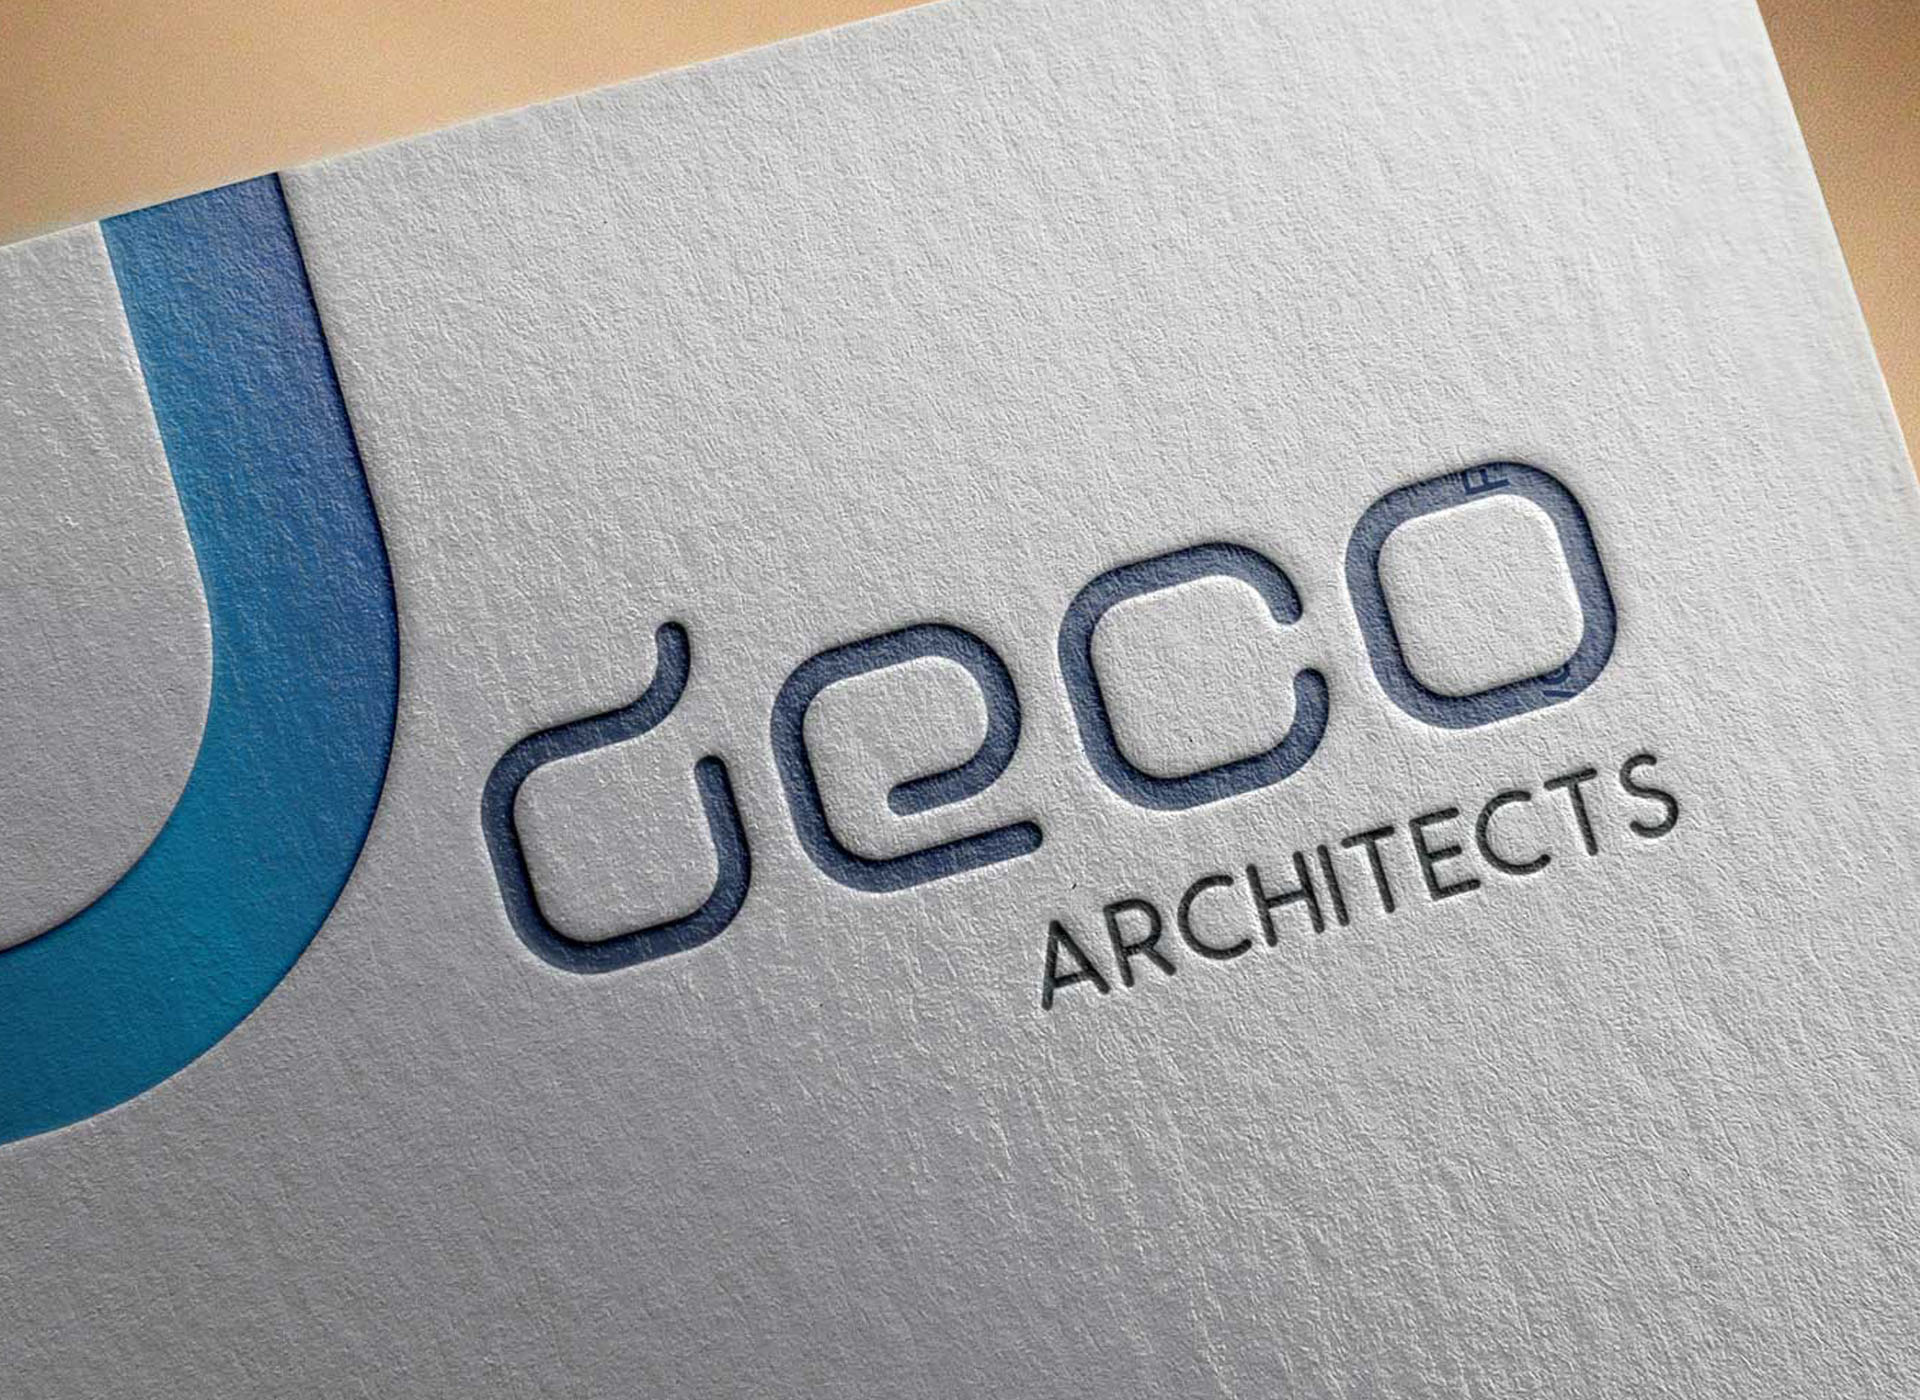 Deco Architects